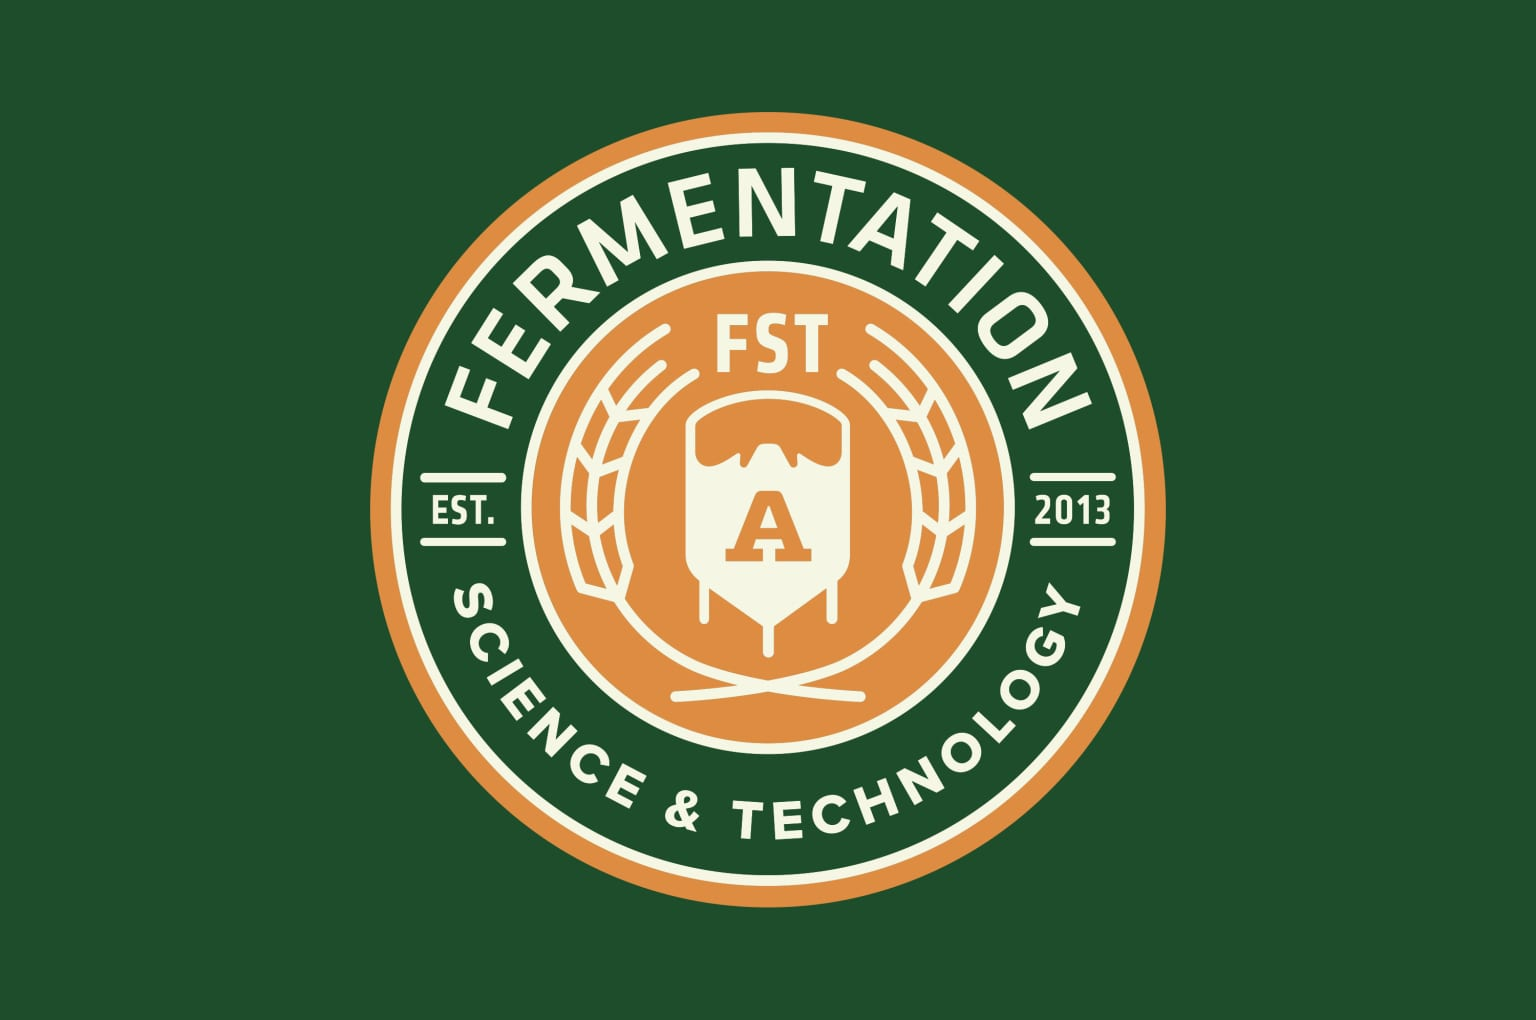 Colorado State University, Fermentation Sciences and Technology